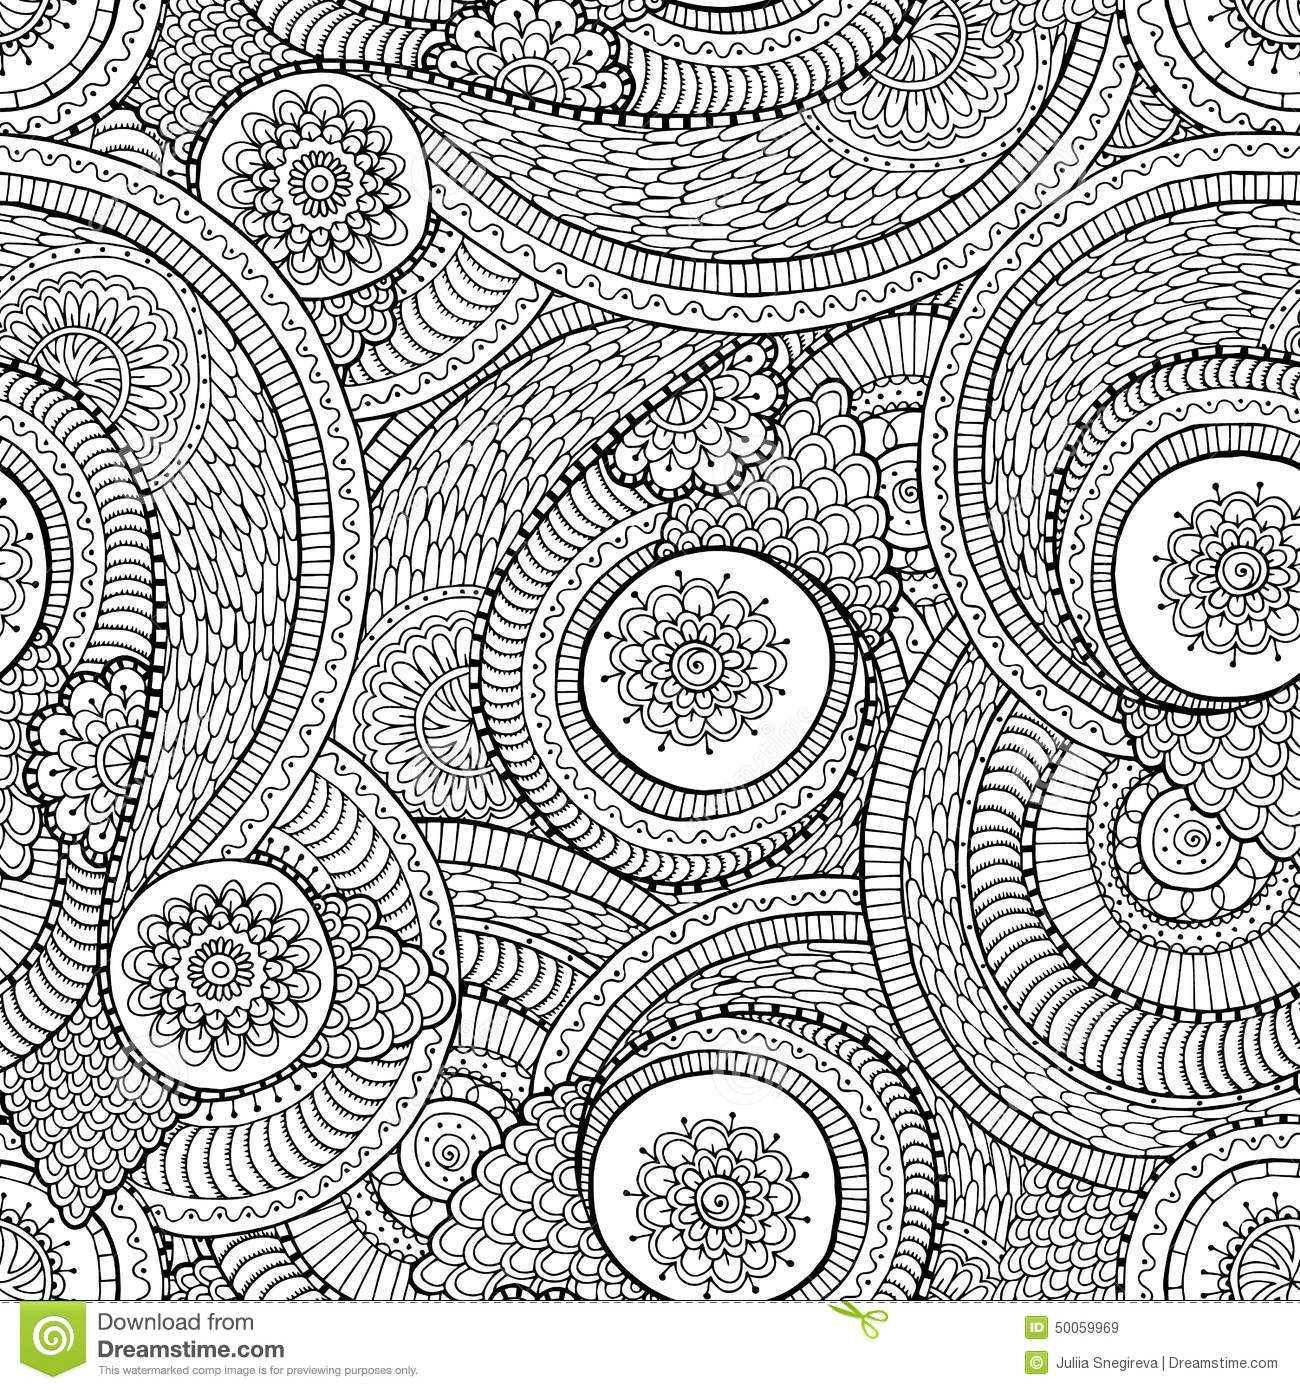 Tribal Coloring Pages Itsamansworld Tribal reasure planet coloring ...